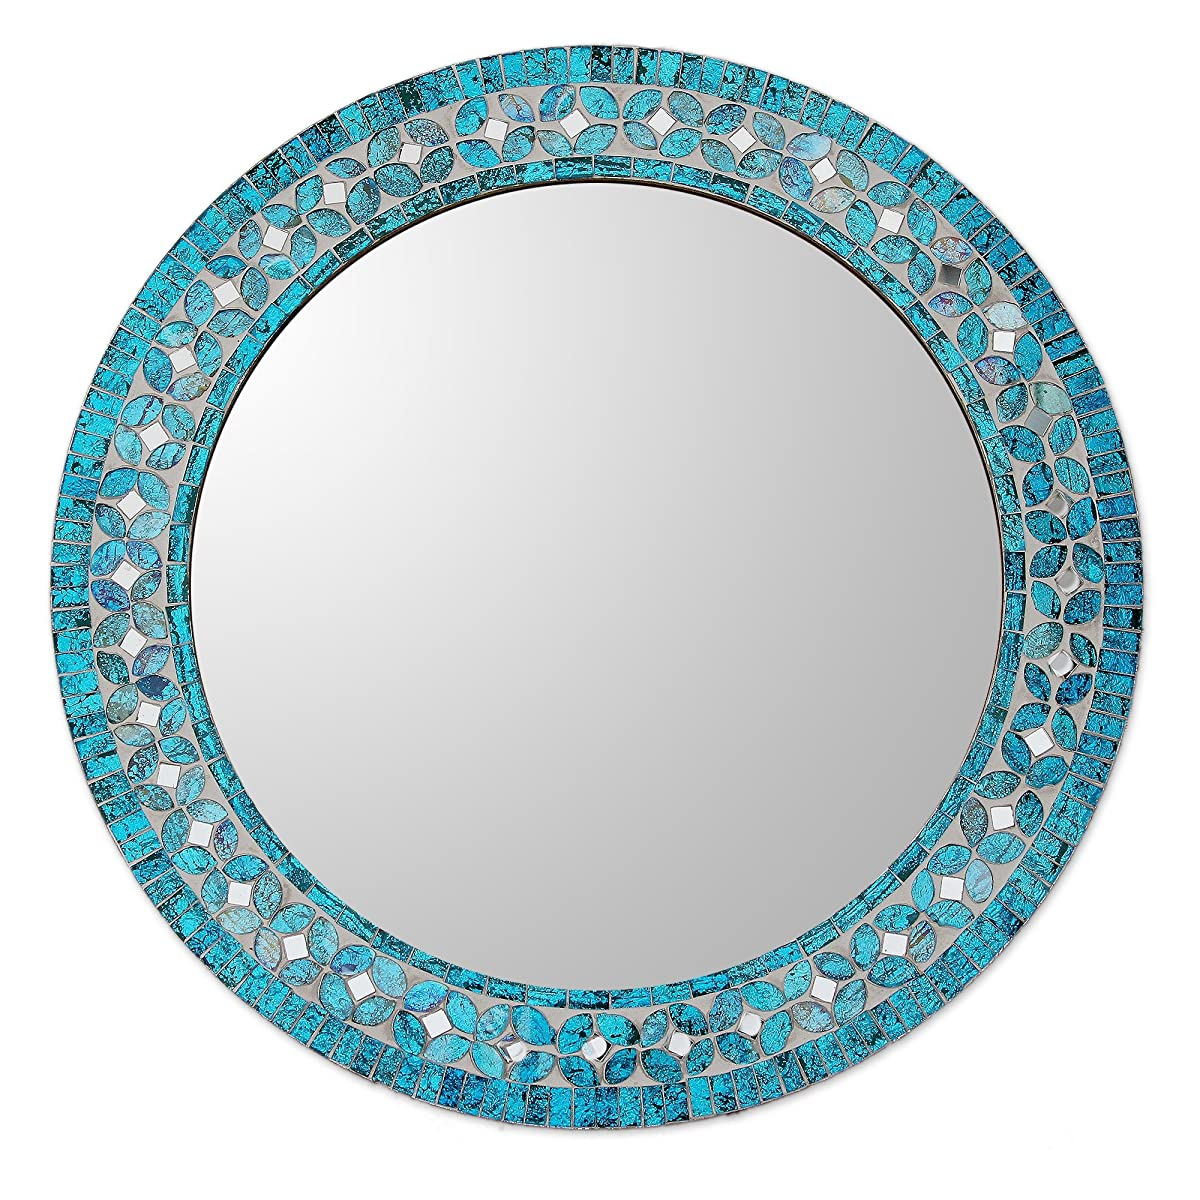 NOVICA Glass Mosaic Wall Mirror, Turquoise Blossom